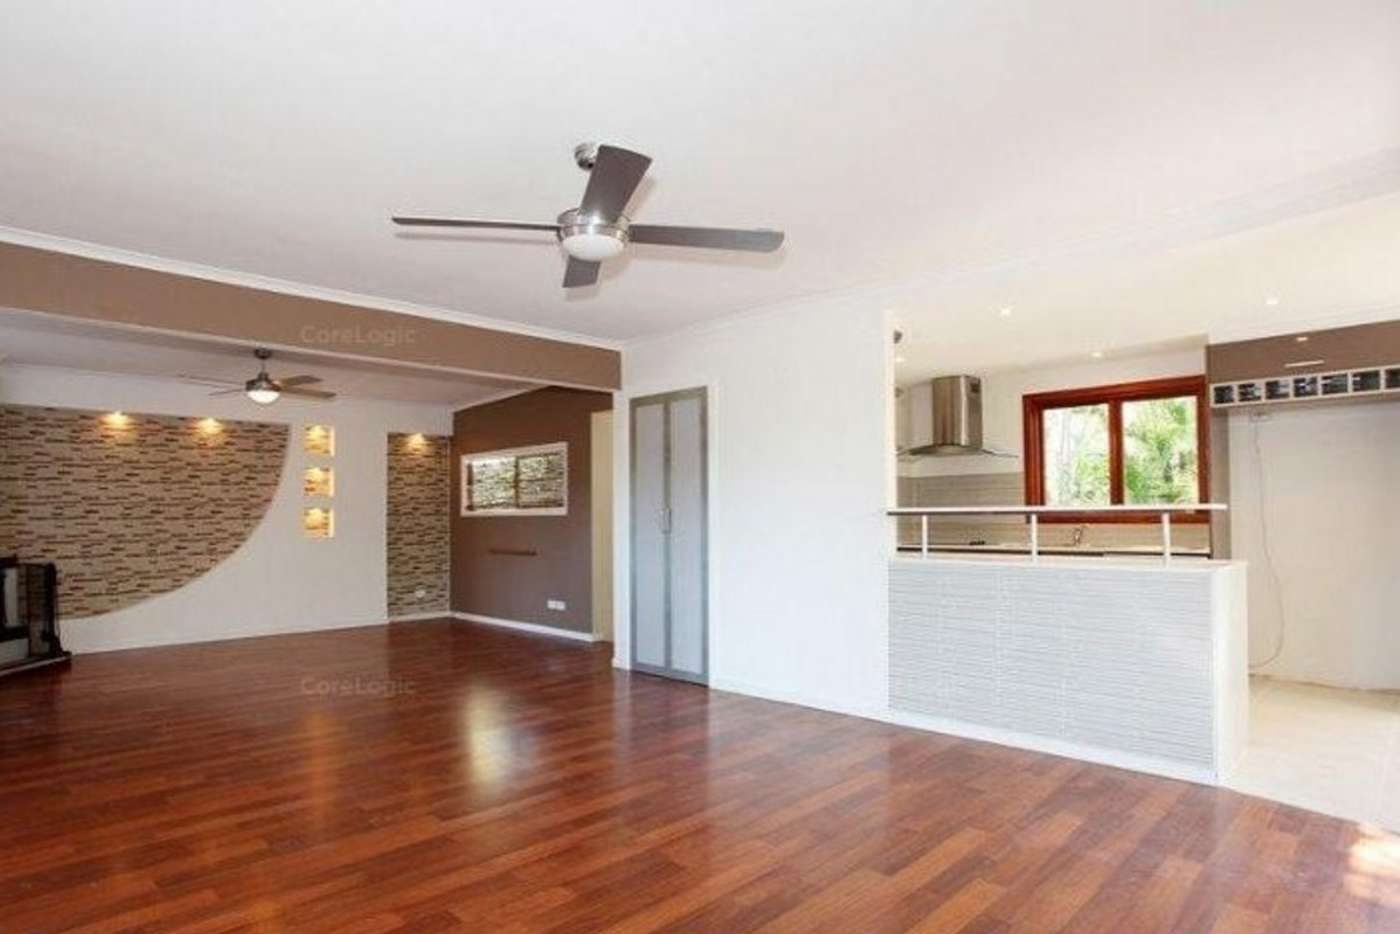 Sixth view of Homely house listing, 9 King Street, Southport QLD 4215